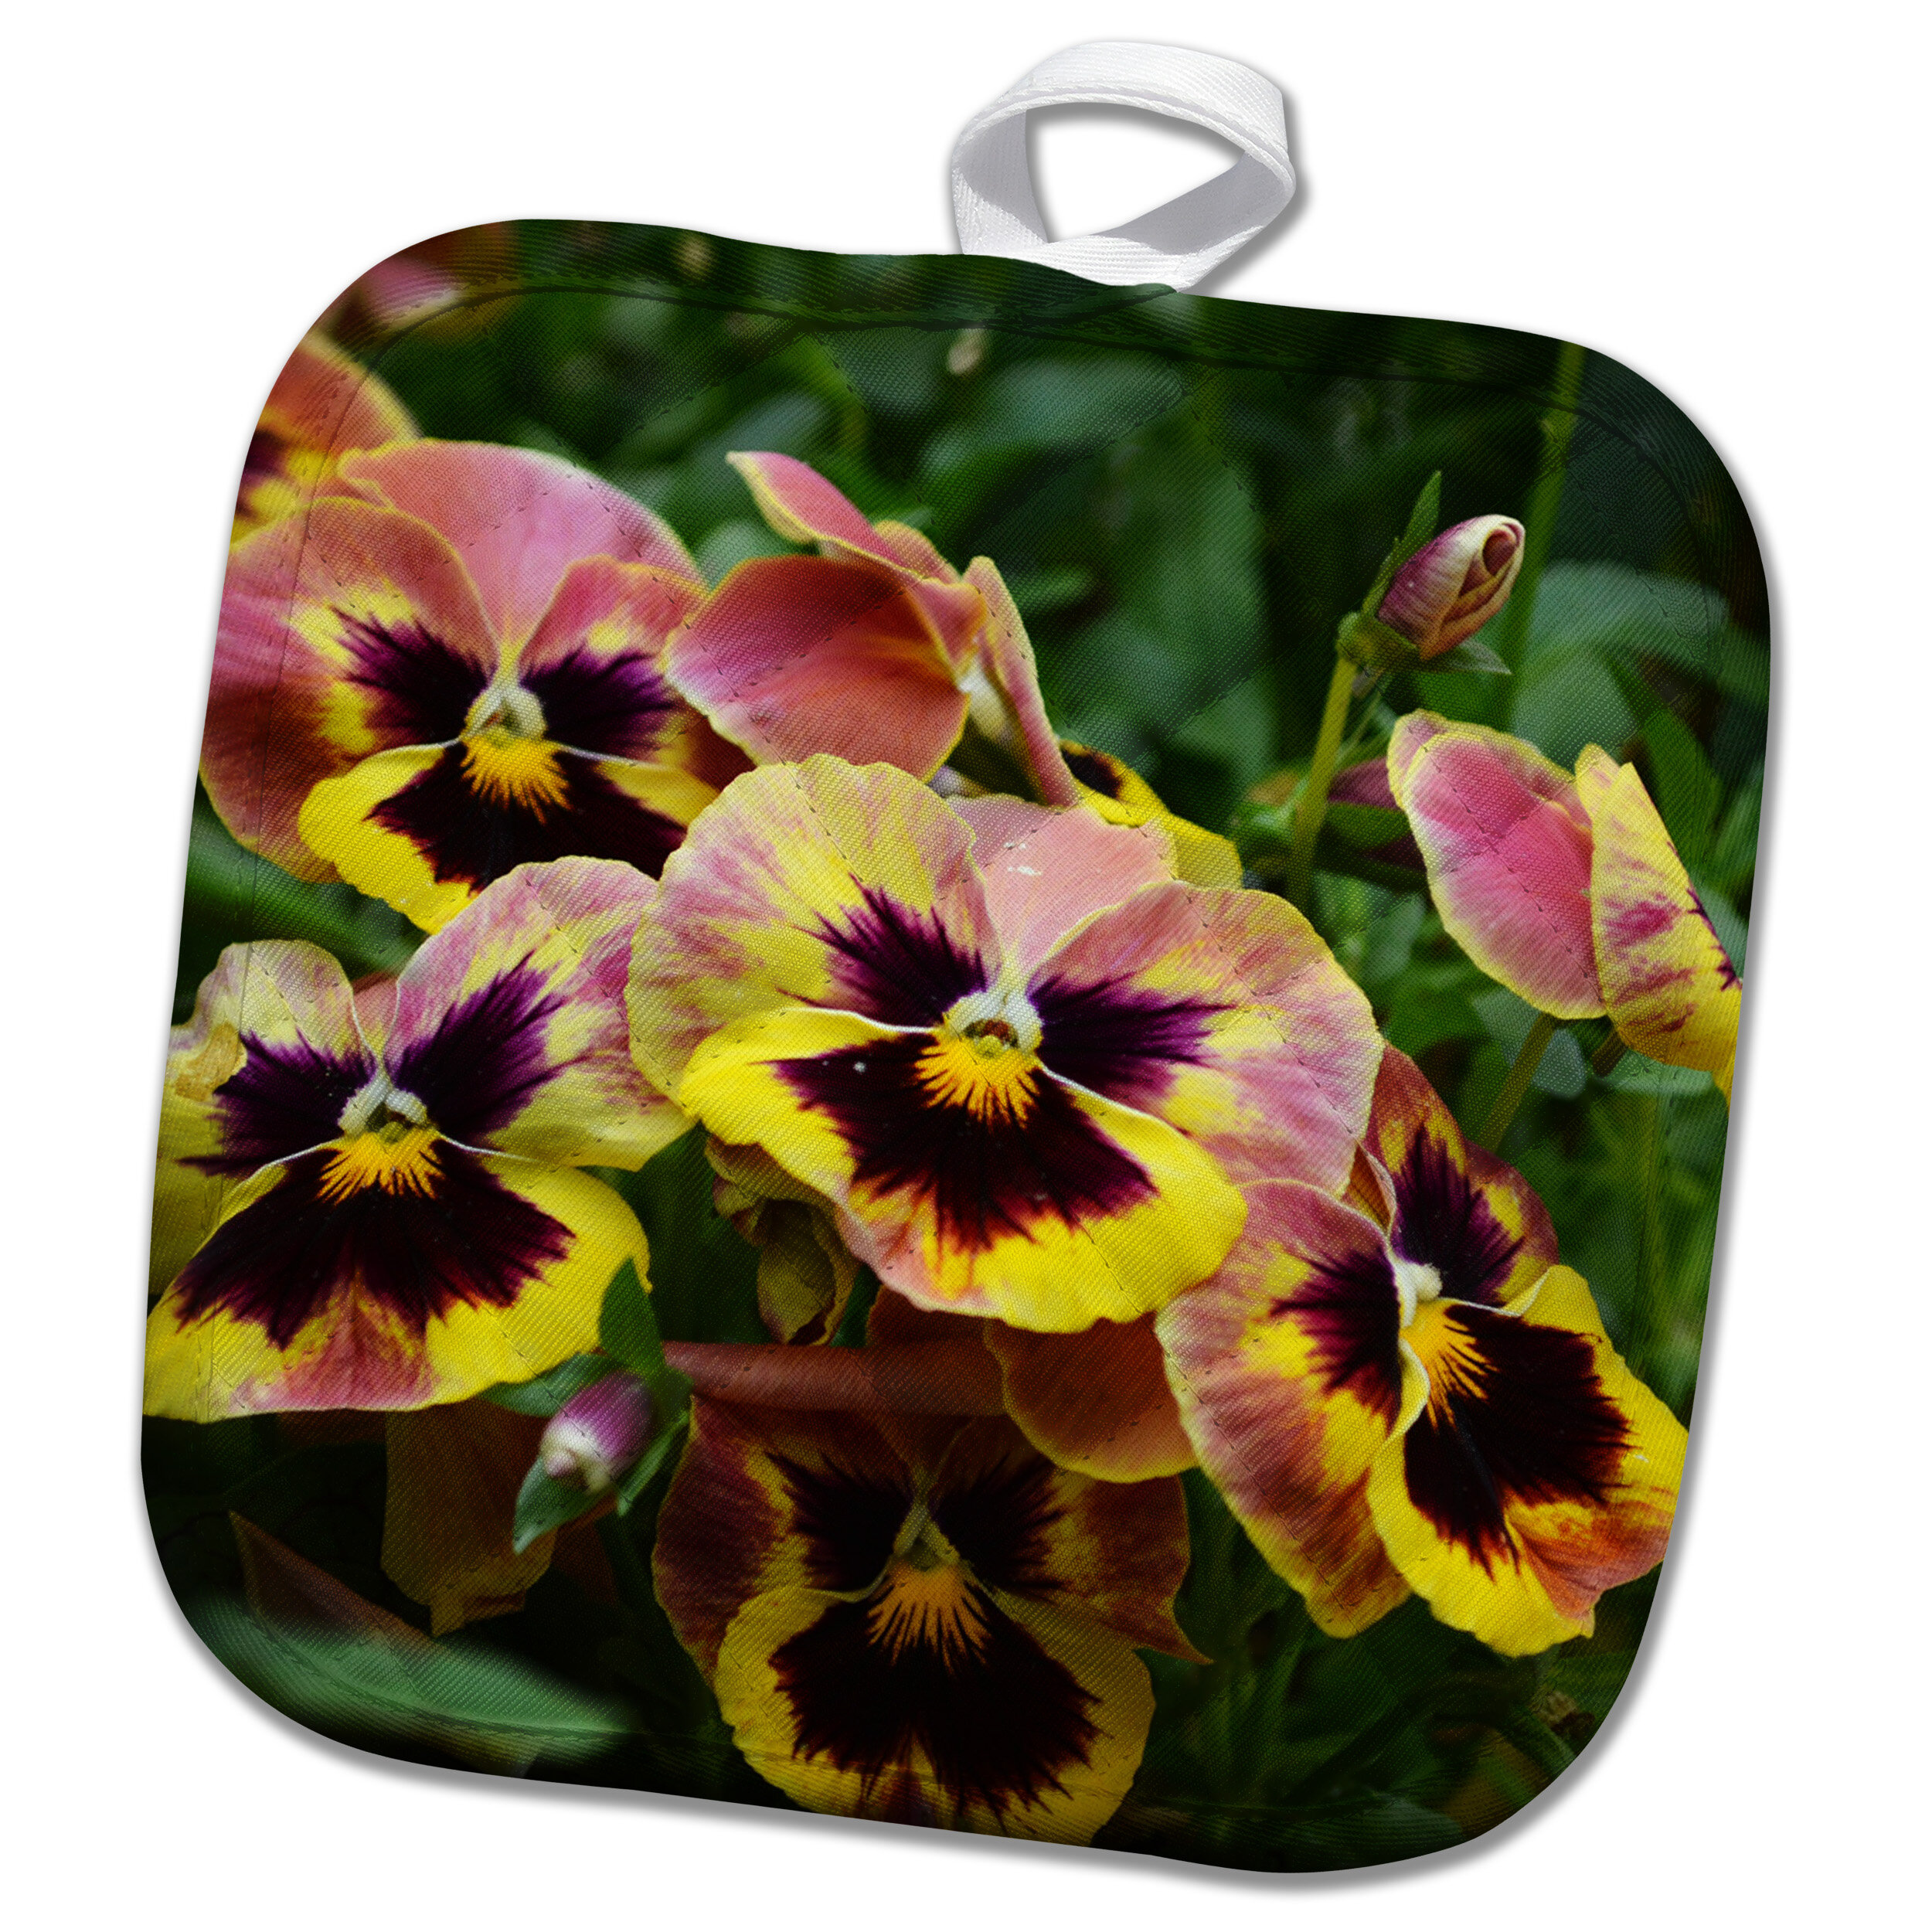 3drose Beautiful Bed Of Pansy Flowers Is A Photo Of Autumnpansies Potholder Wayfair